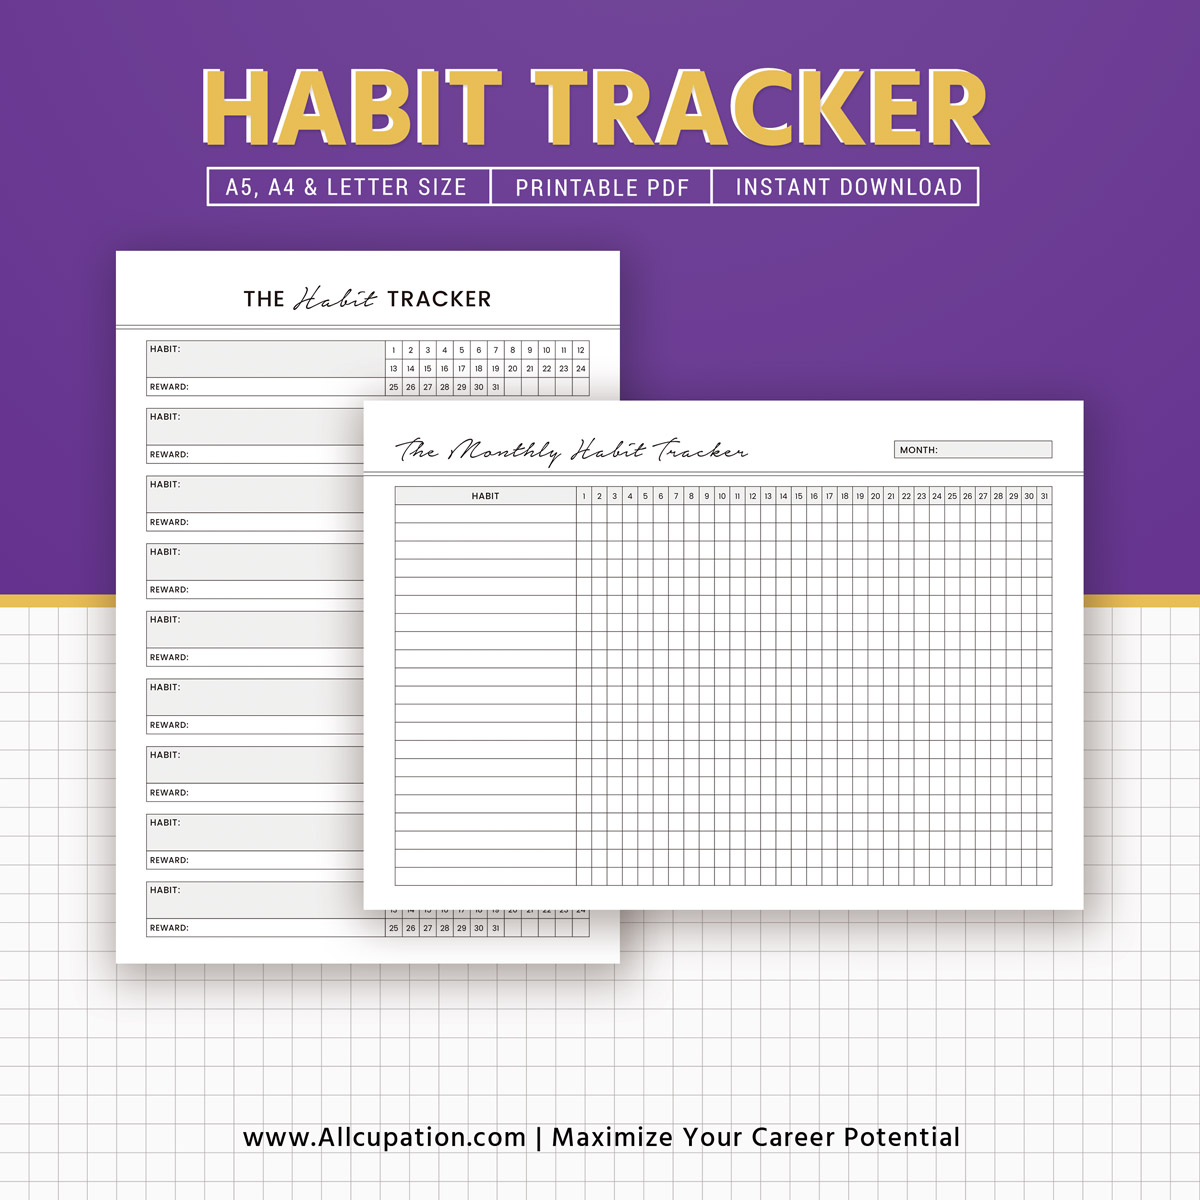 photo about Habit Tracker Printable titled Printable Routine Tracker, Regular monthly Practice Tracker Inserts 2019, Practice Planner, Planner Layout, Easiest Planner,Filofax A5, A4, Letter, Prompt Obtain